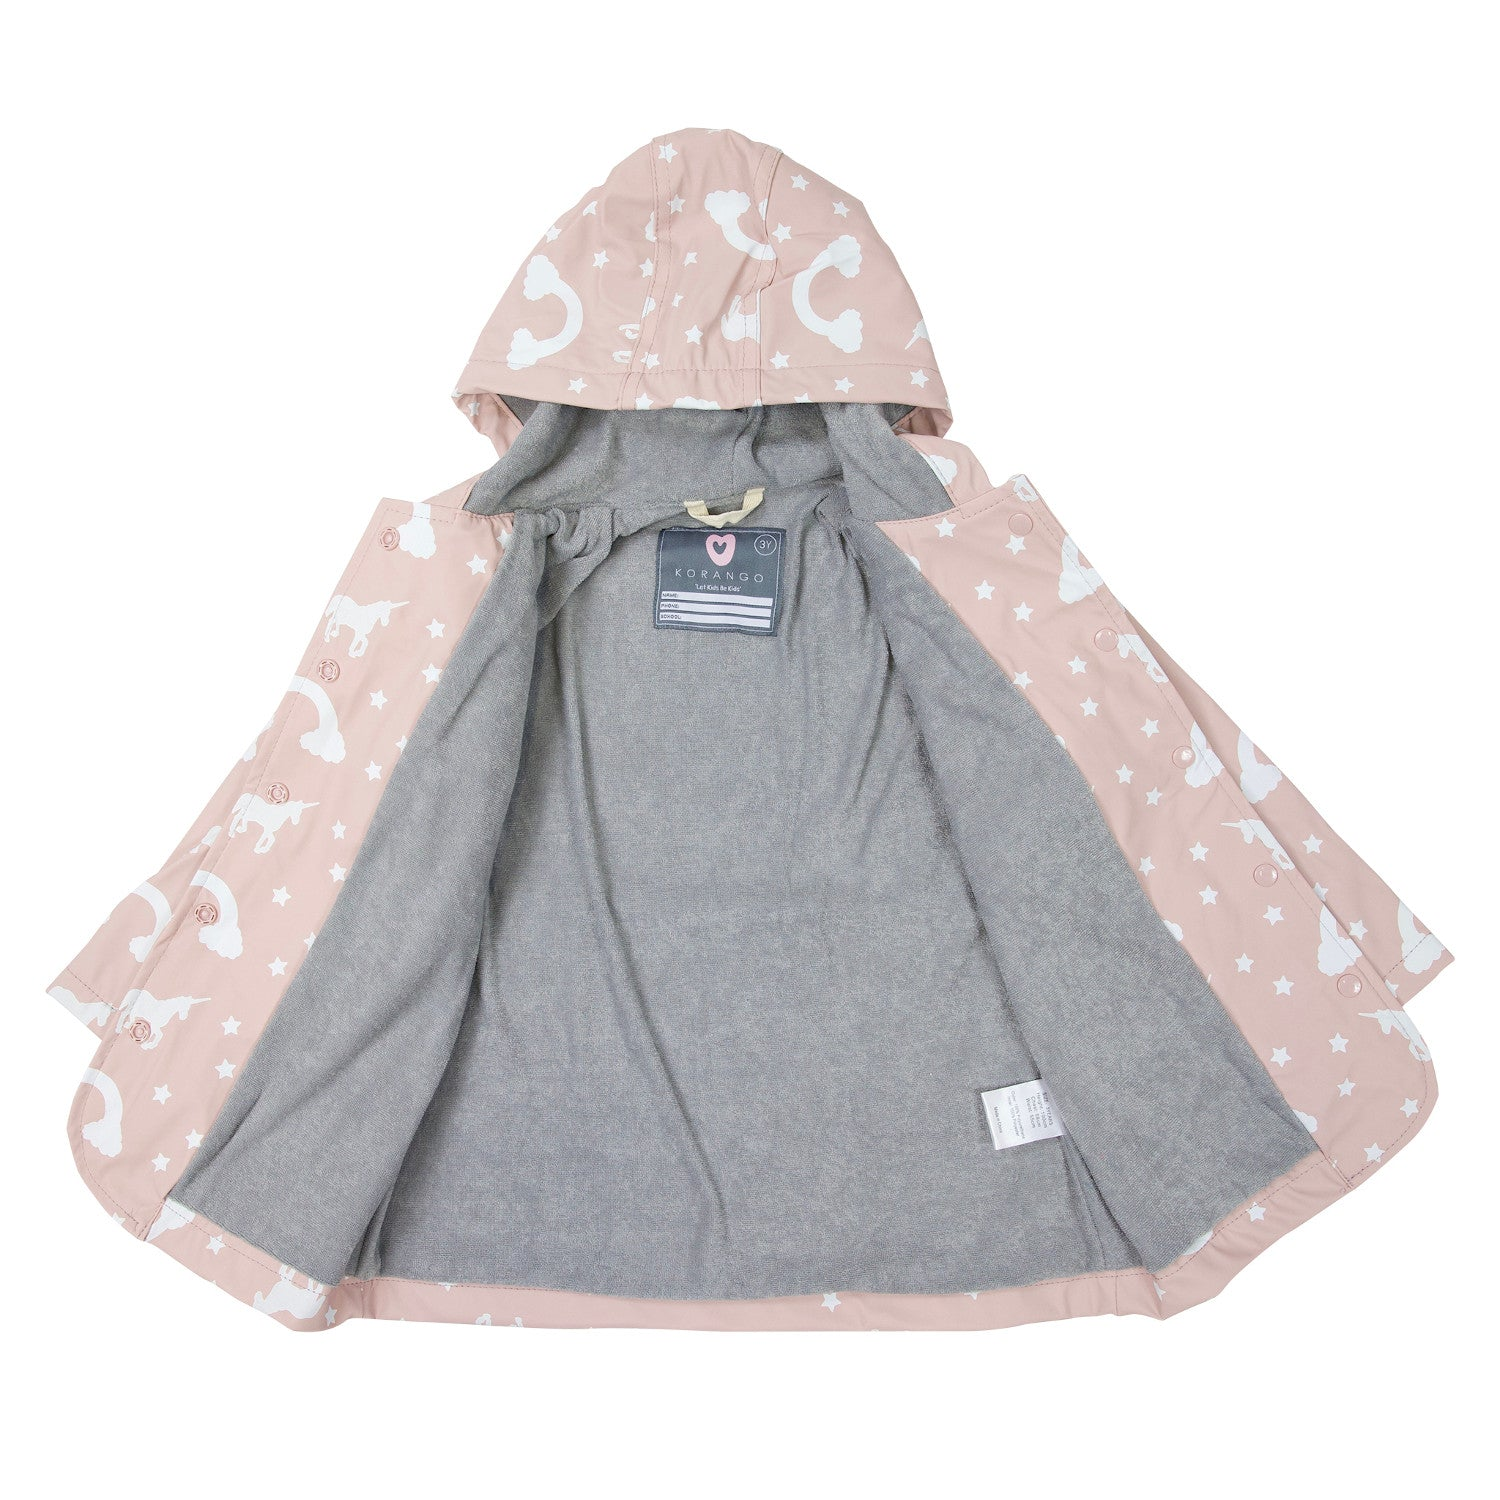 Korango Raincoat Unicorn Blush Pink Colour Changing